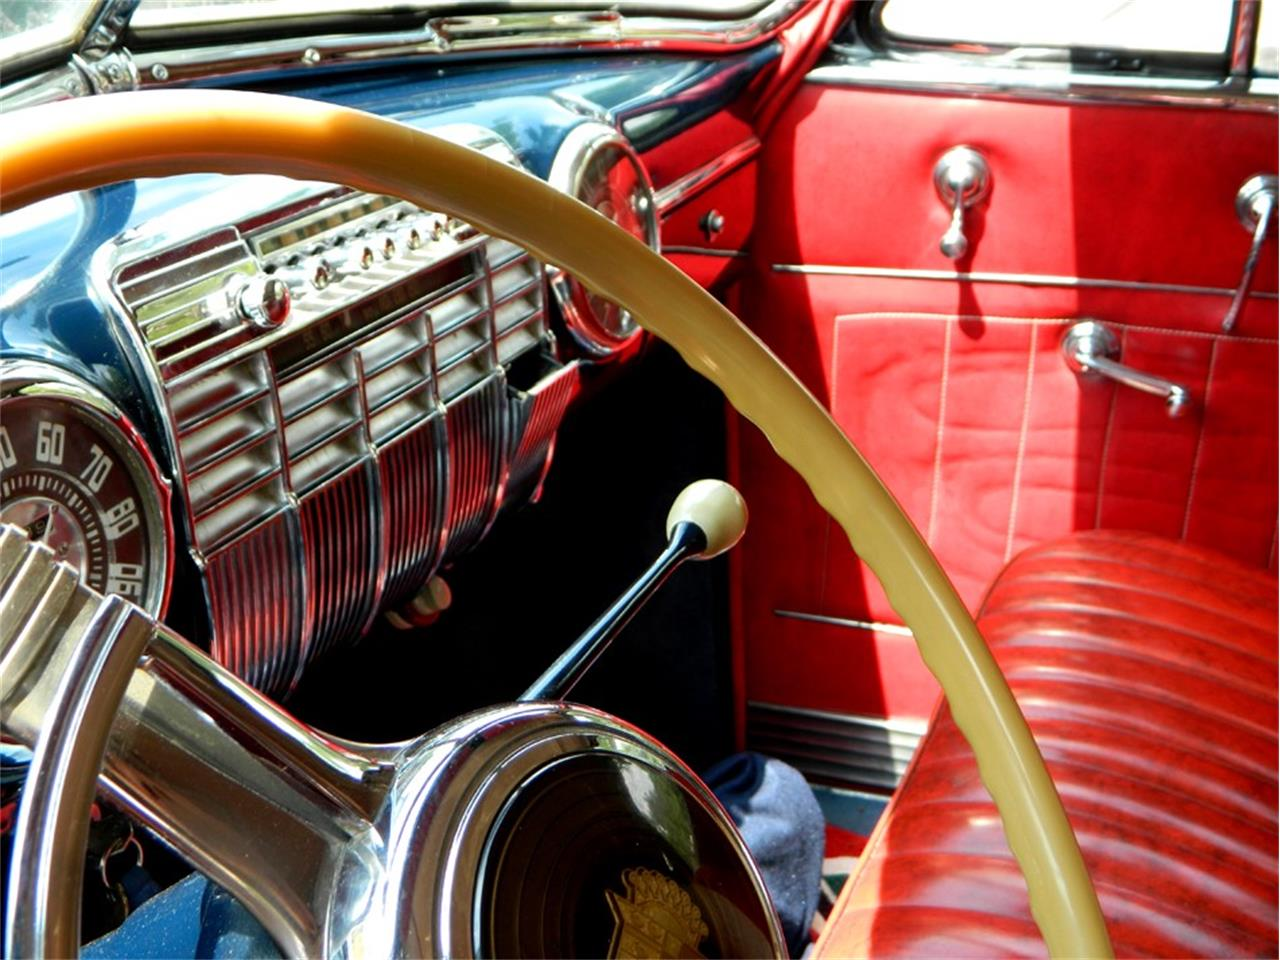 Large Picture of 1941 Cadillac Convertible located in Aurora Colorado - $78,000.00 - I7QF